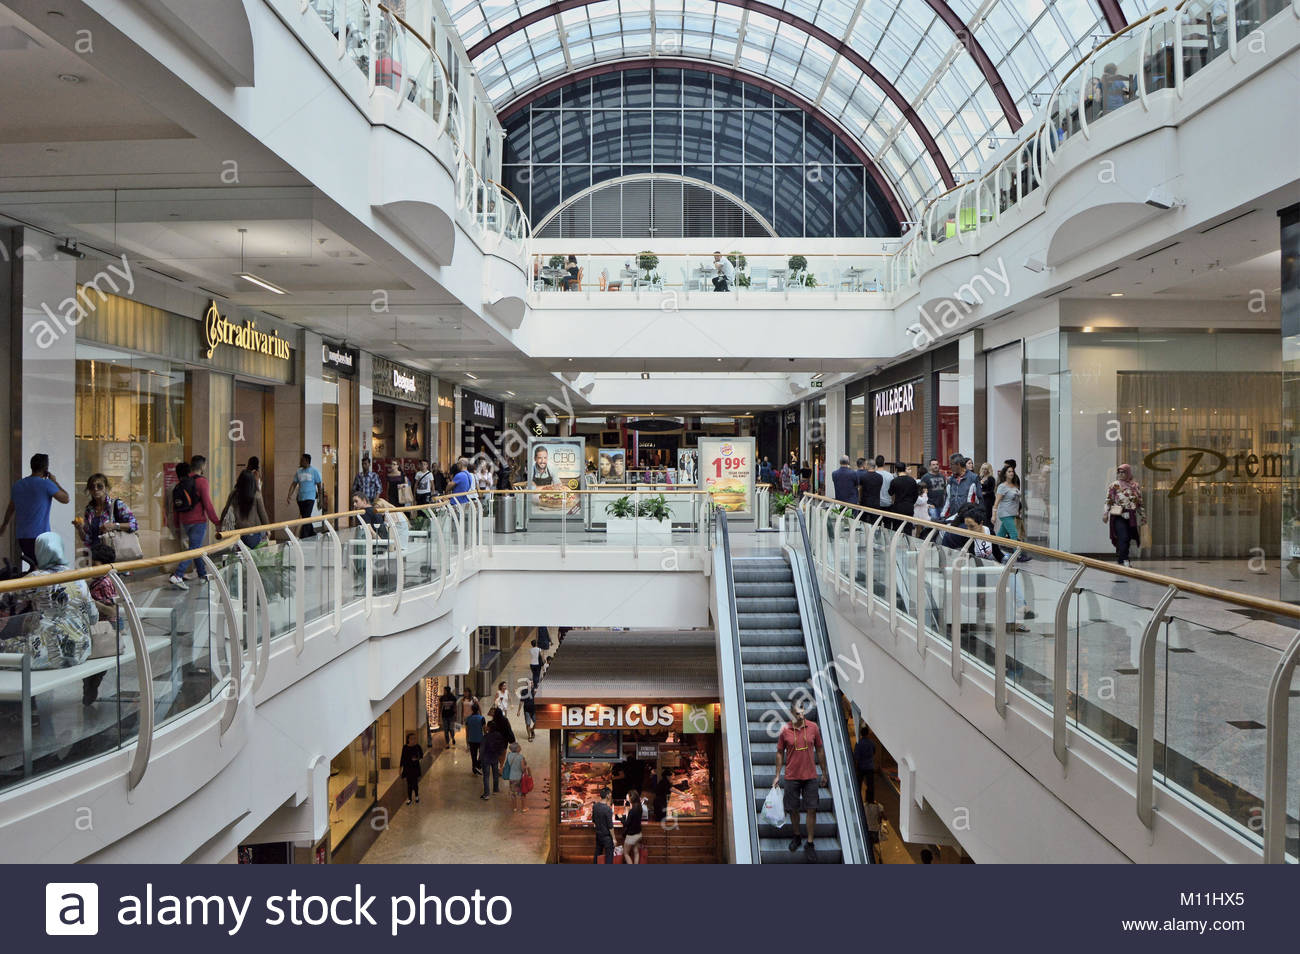 Shopping mall spain stock photos shopping mall spain stock images alamy - Centro comercial illa diagonal ...